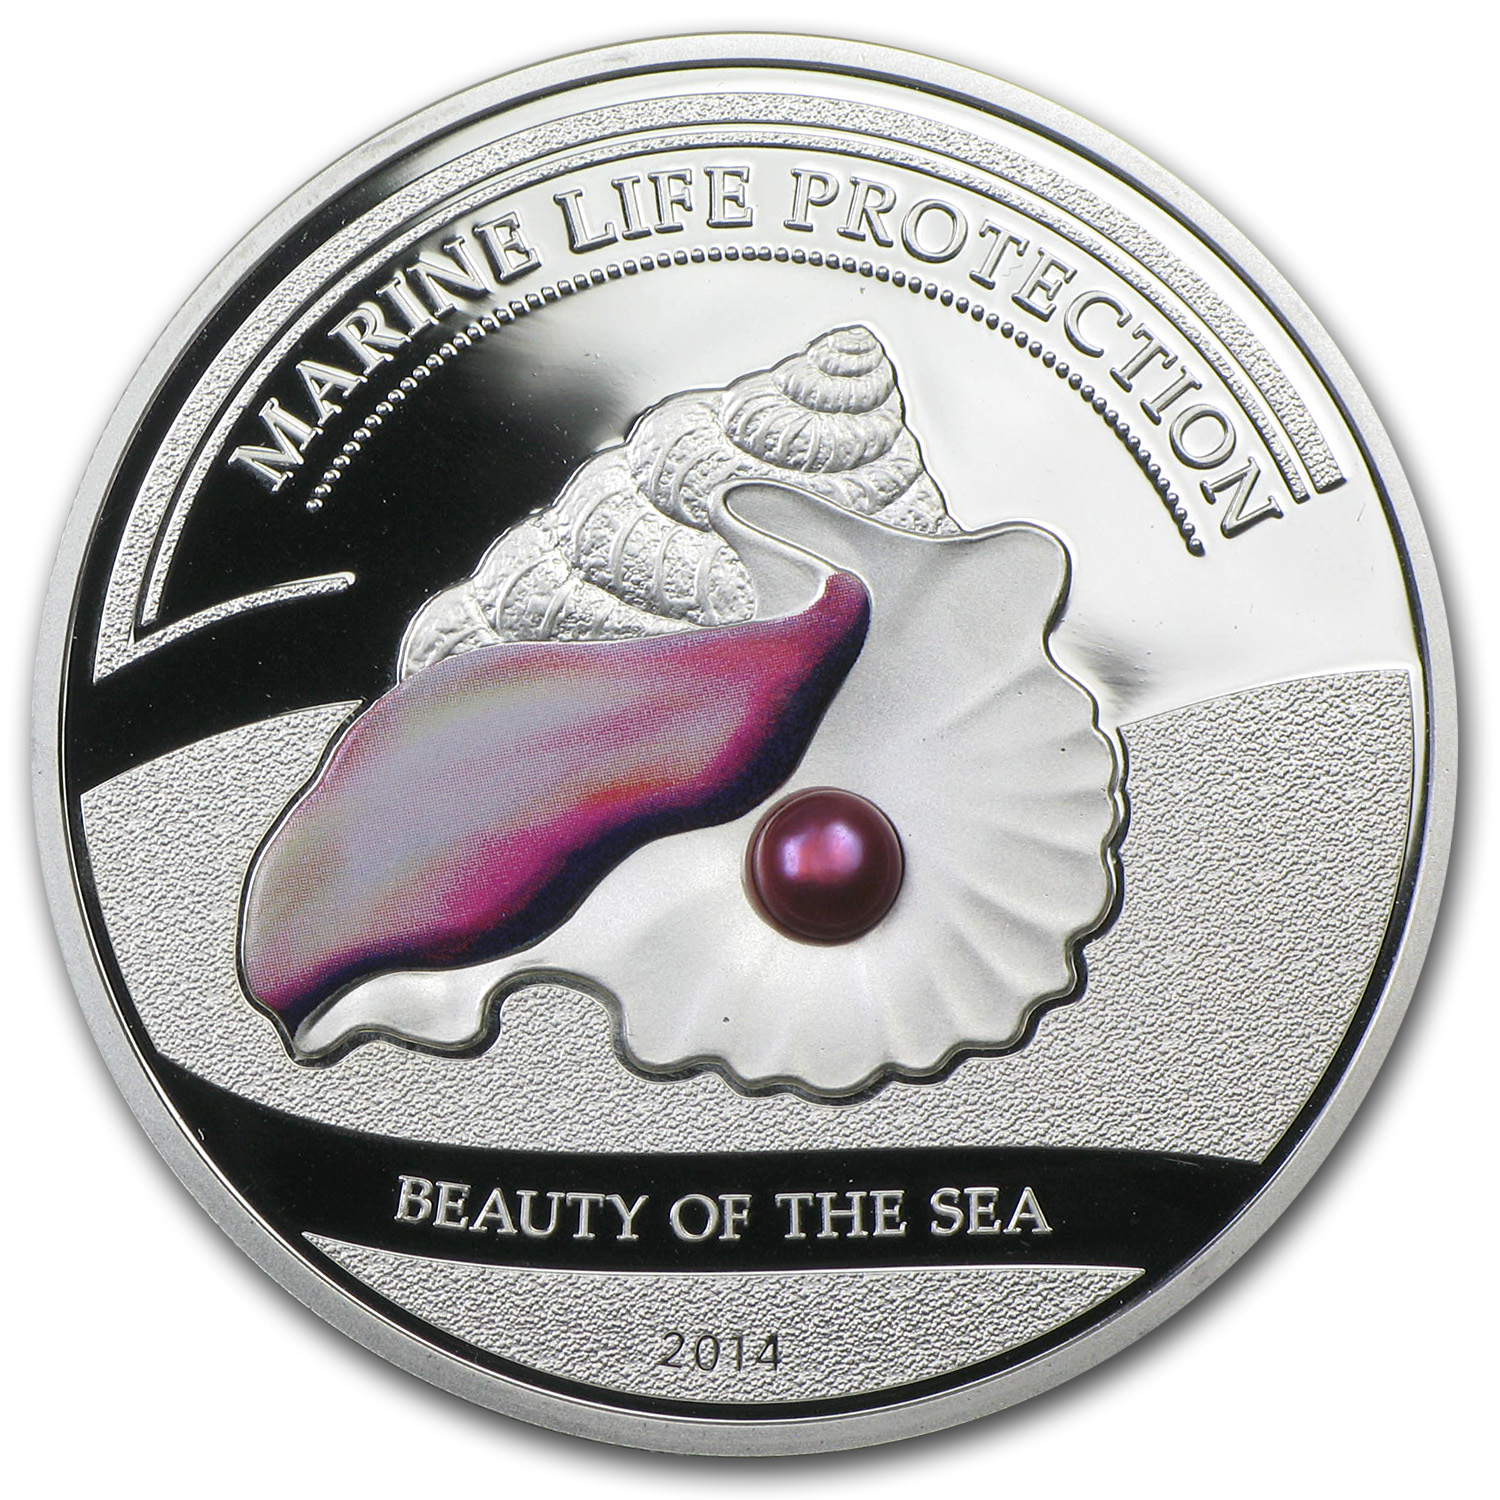 2014 Palau Silver $5 Marine Life Protection Beauty of the Sea